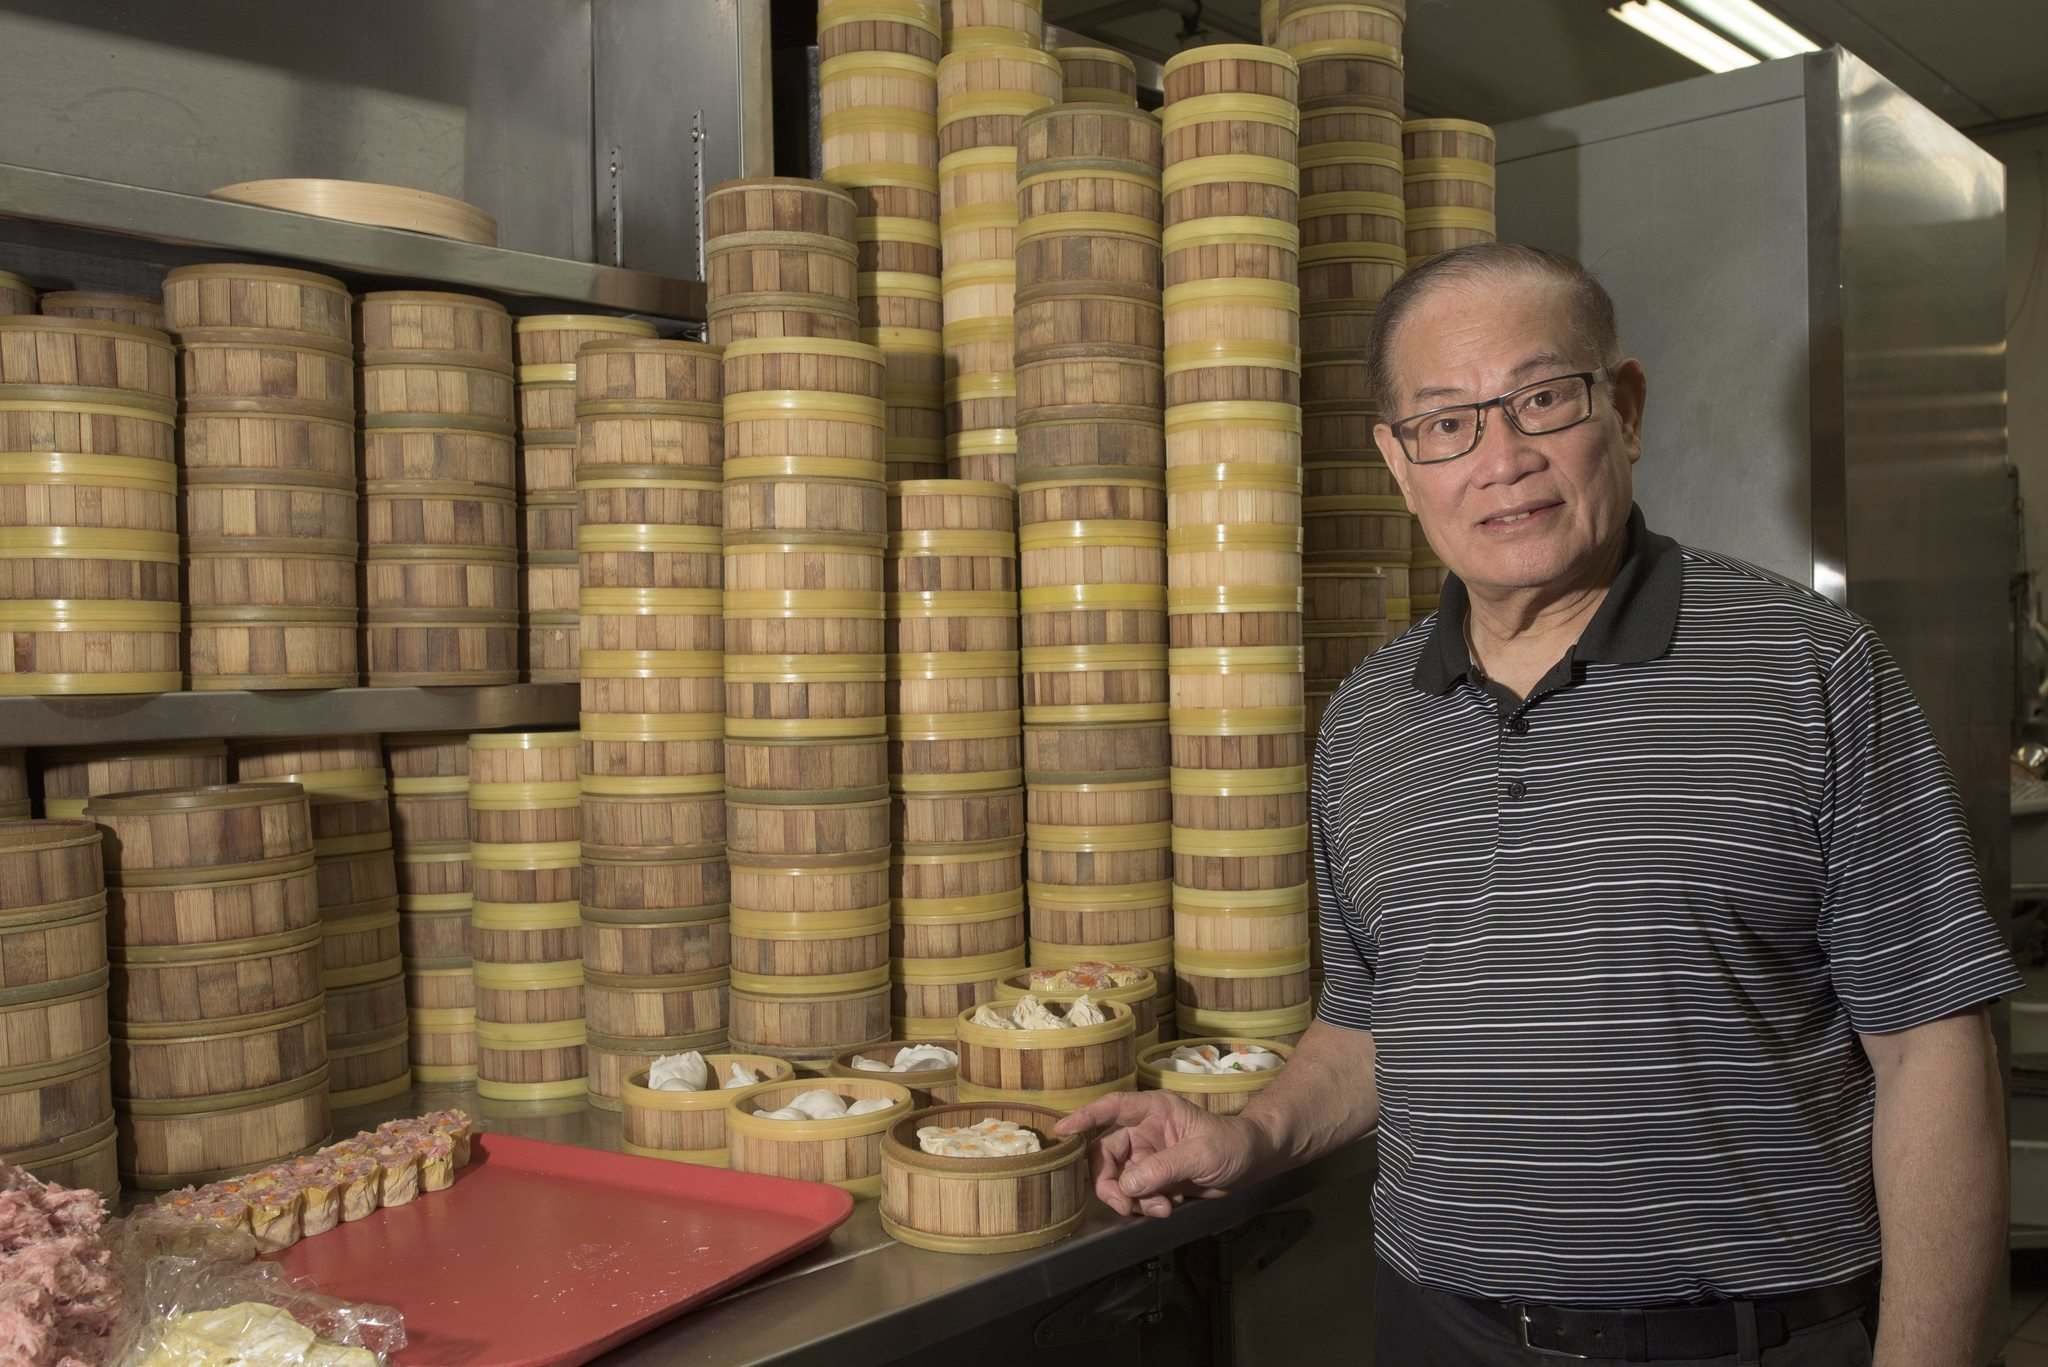 Geoffrey Young, owner and chef at Kum Koon Garden on King Street, says he wanted to 'change people's idea about Chinese restaurants' when he opened his business in 1977.</p></p>